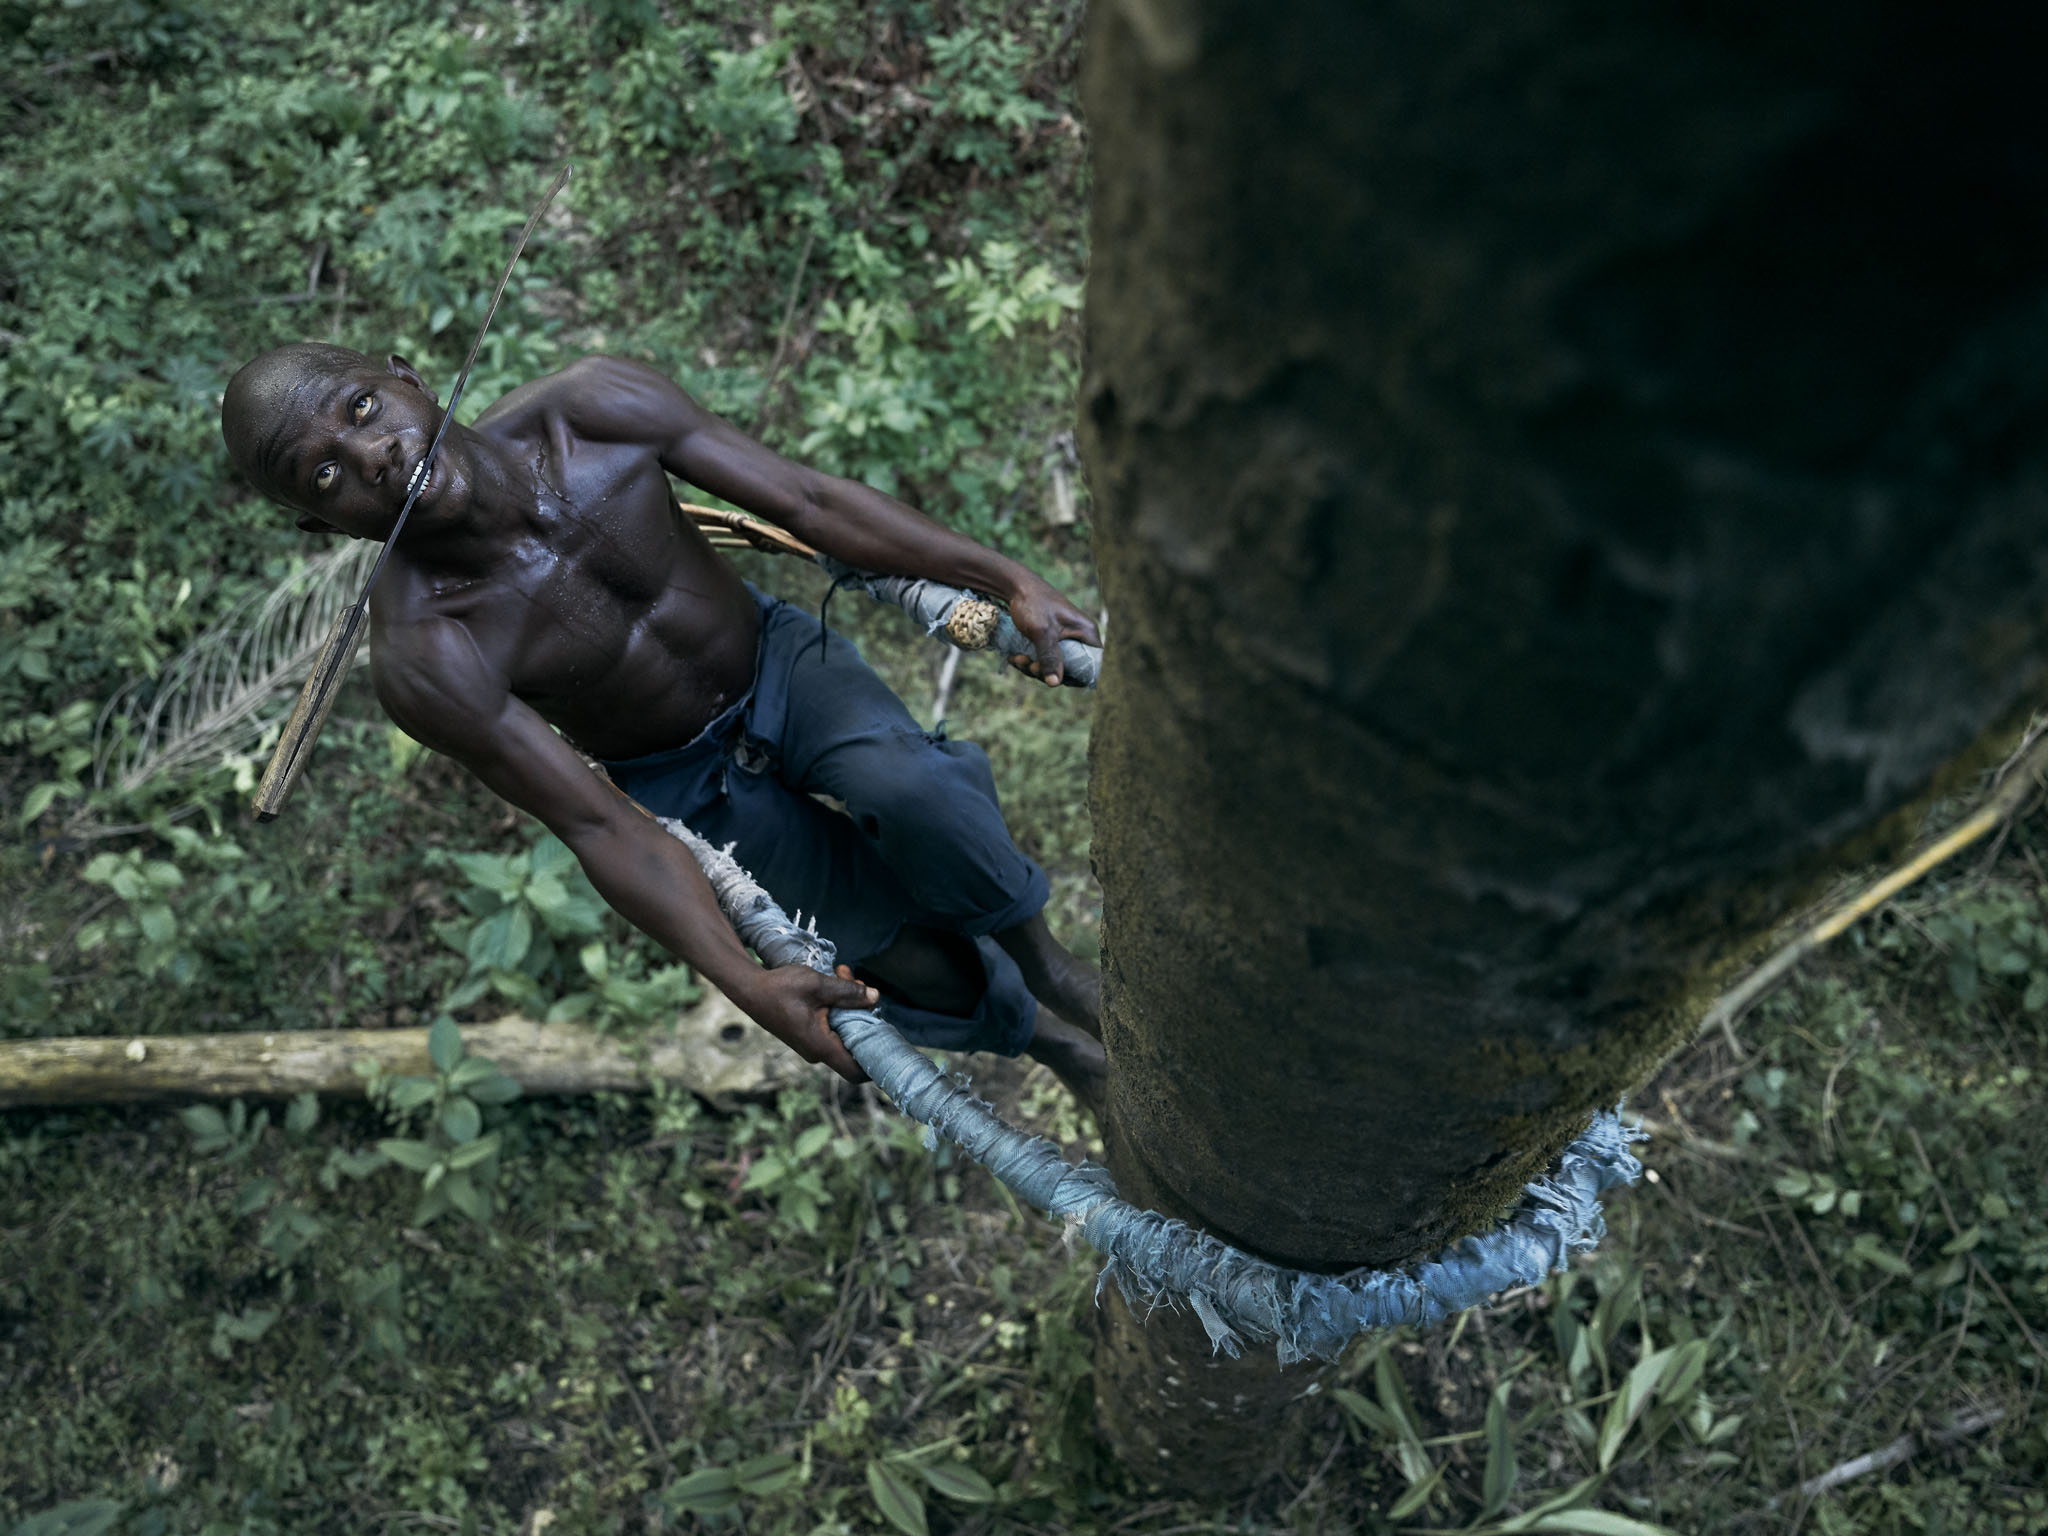 Momoh Babaga, 22, with his knife carried in his mouth, climbs a tree to collect palm kernels which will be processed into oil, Tombohuaun, Kailahun District, Sierra Leone, May 2017.